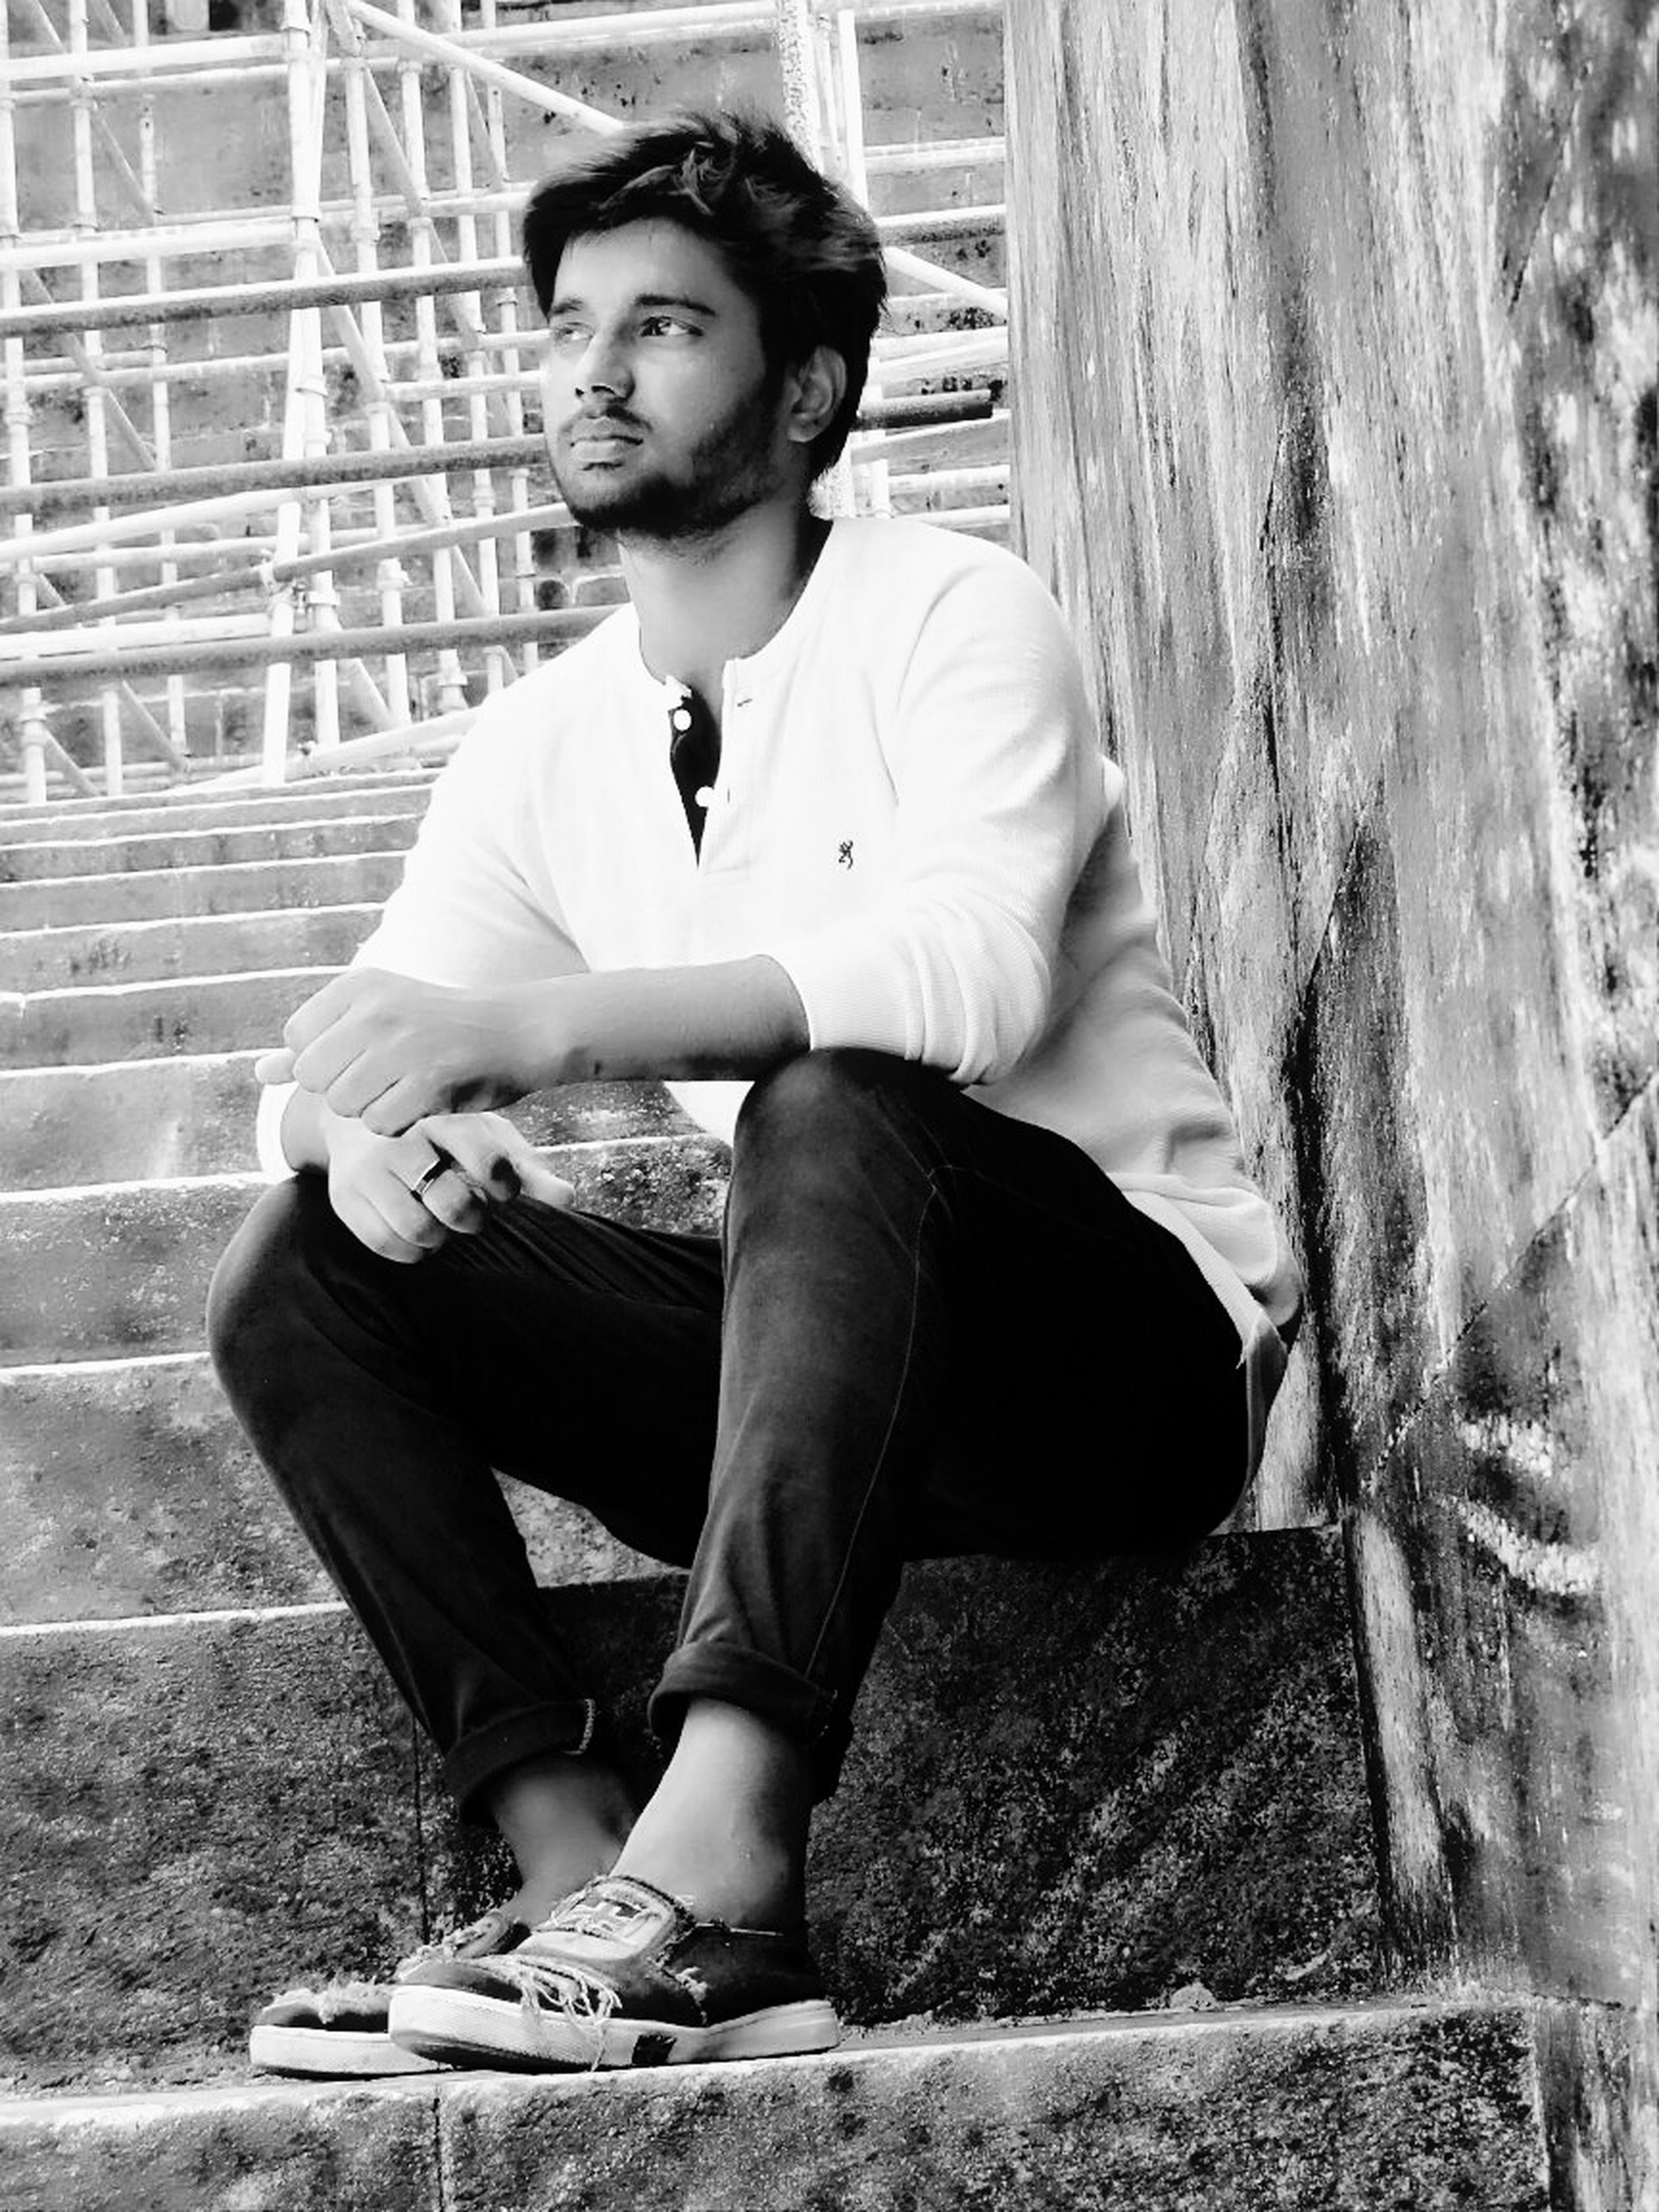 young adult, young men, sitting, one person, real people, full length, casual clothing, front view, lifestyles, portrait, day, handsome, leisure activity, outdoors, looking at camera